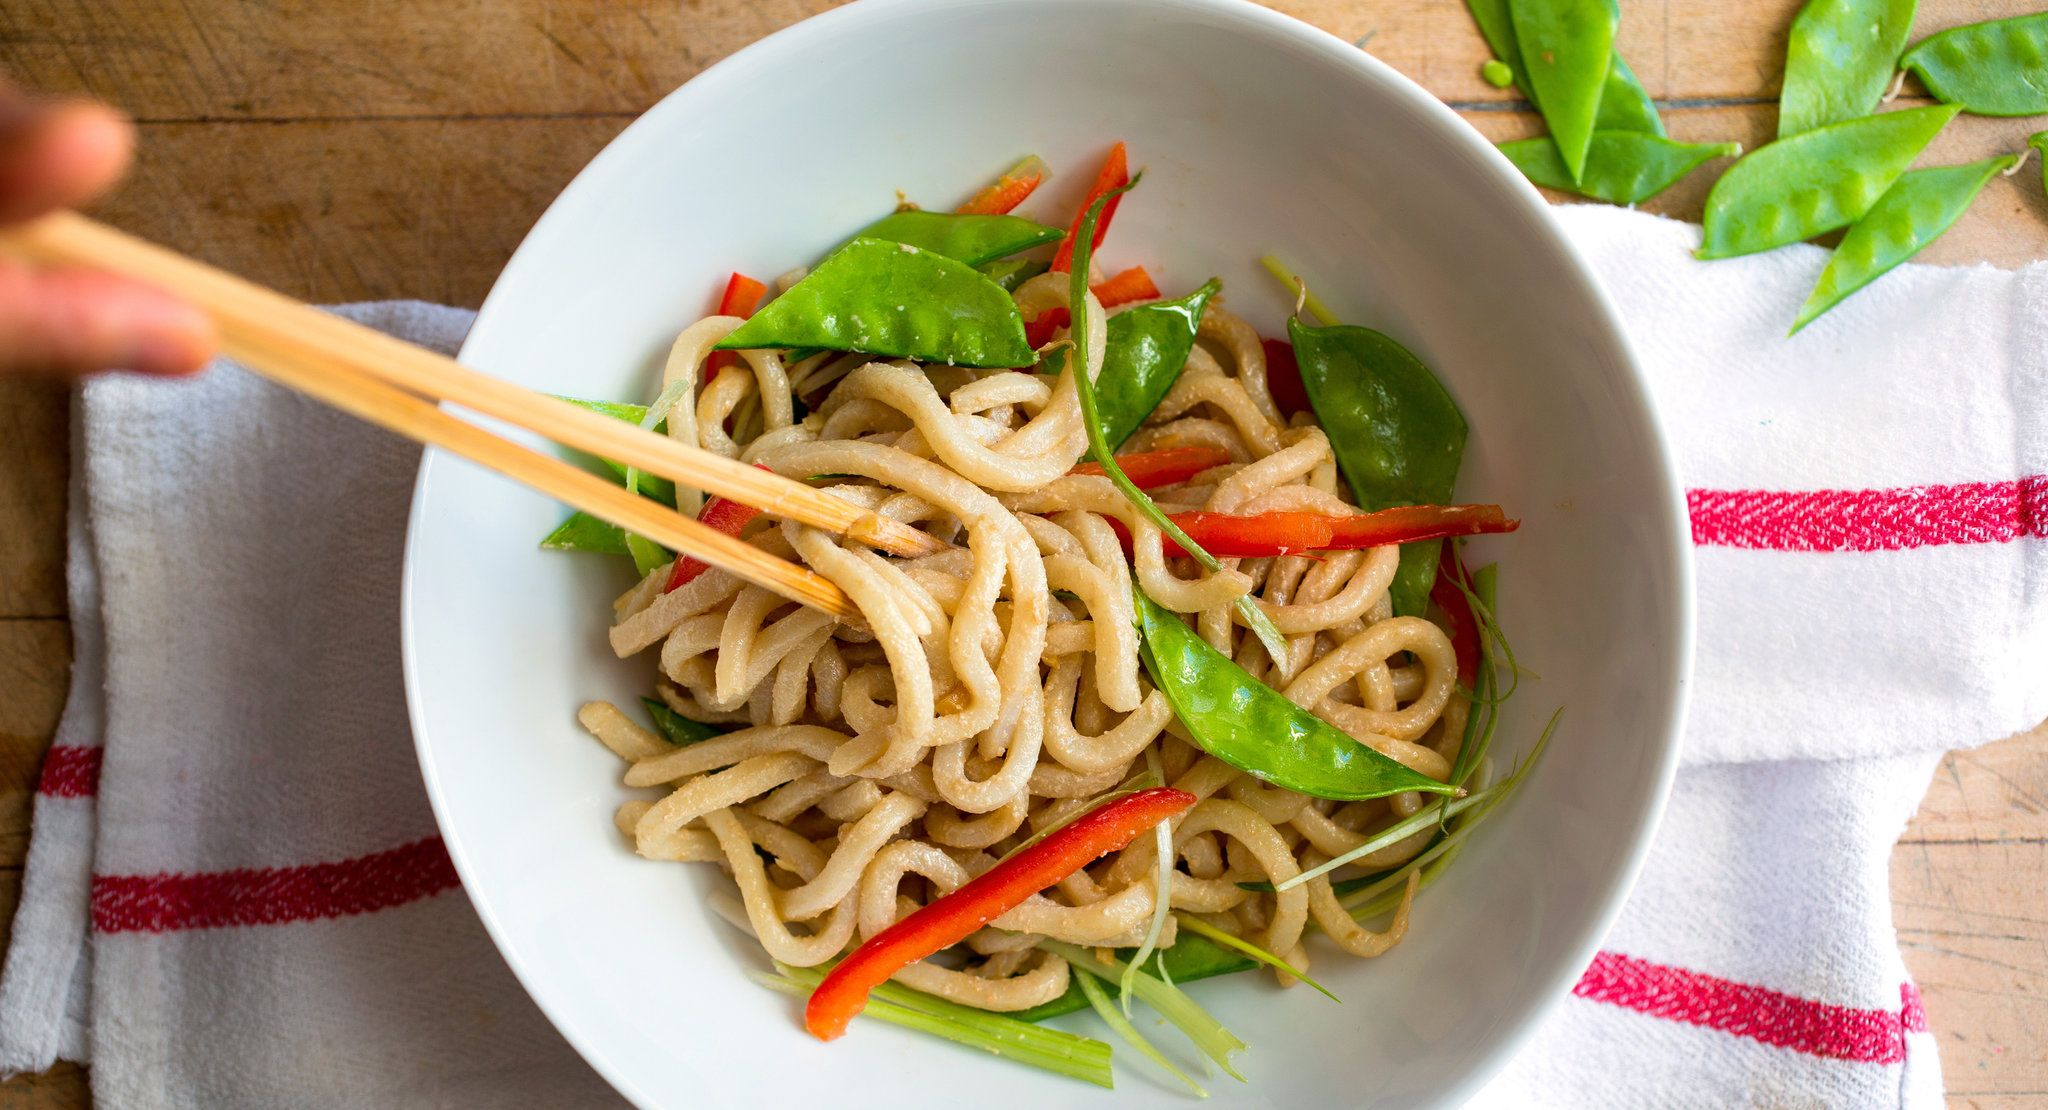 Cold Sesame Noodles With Crunchy Vegetables by Mark